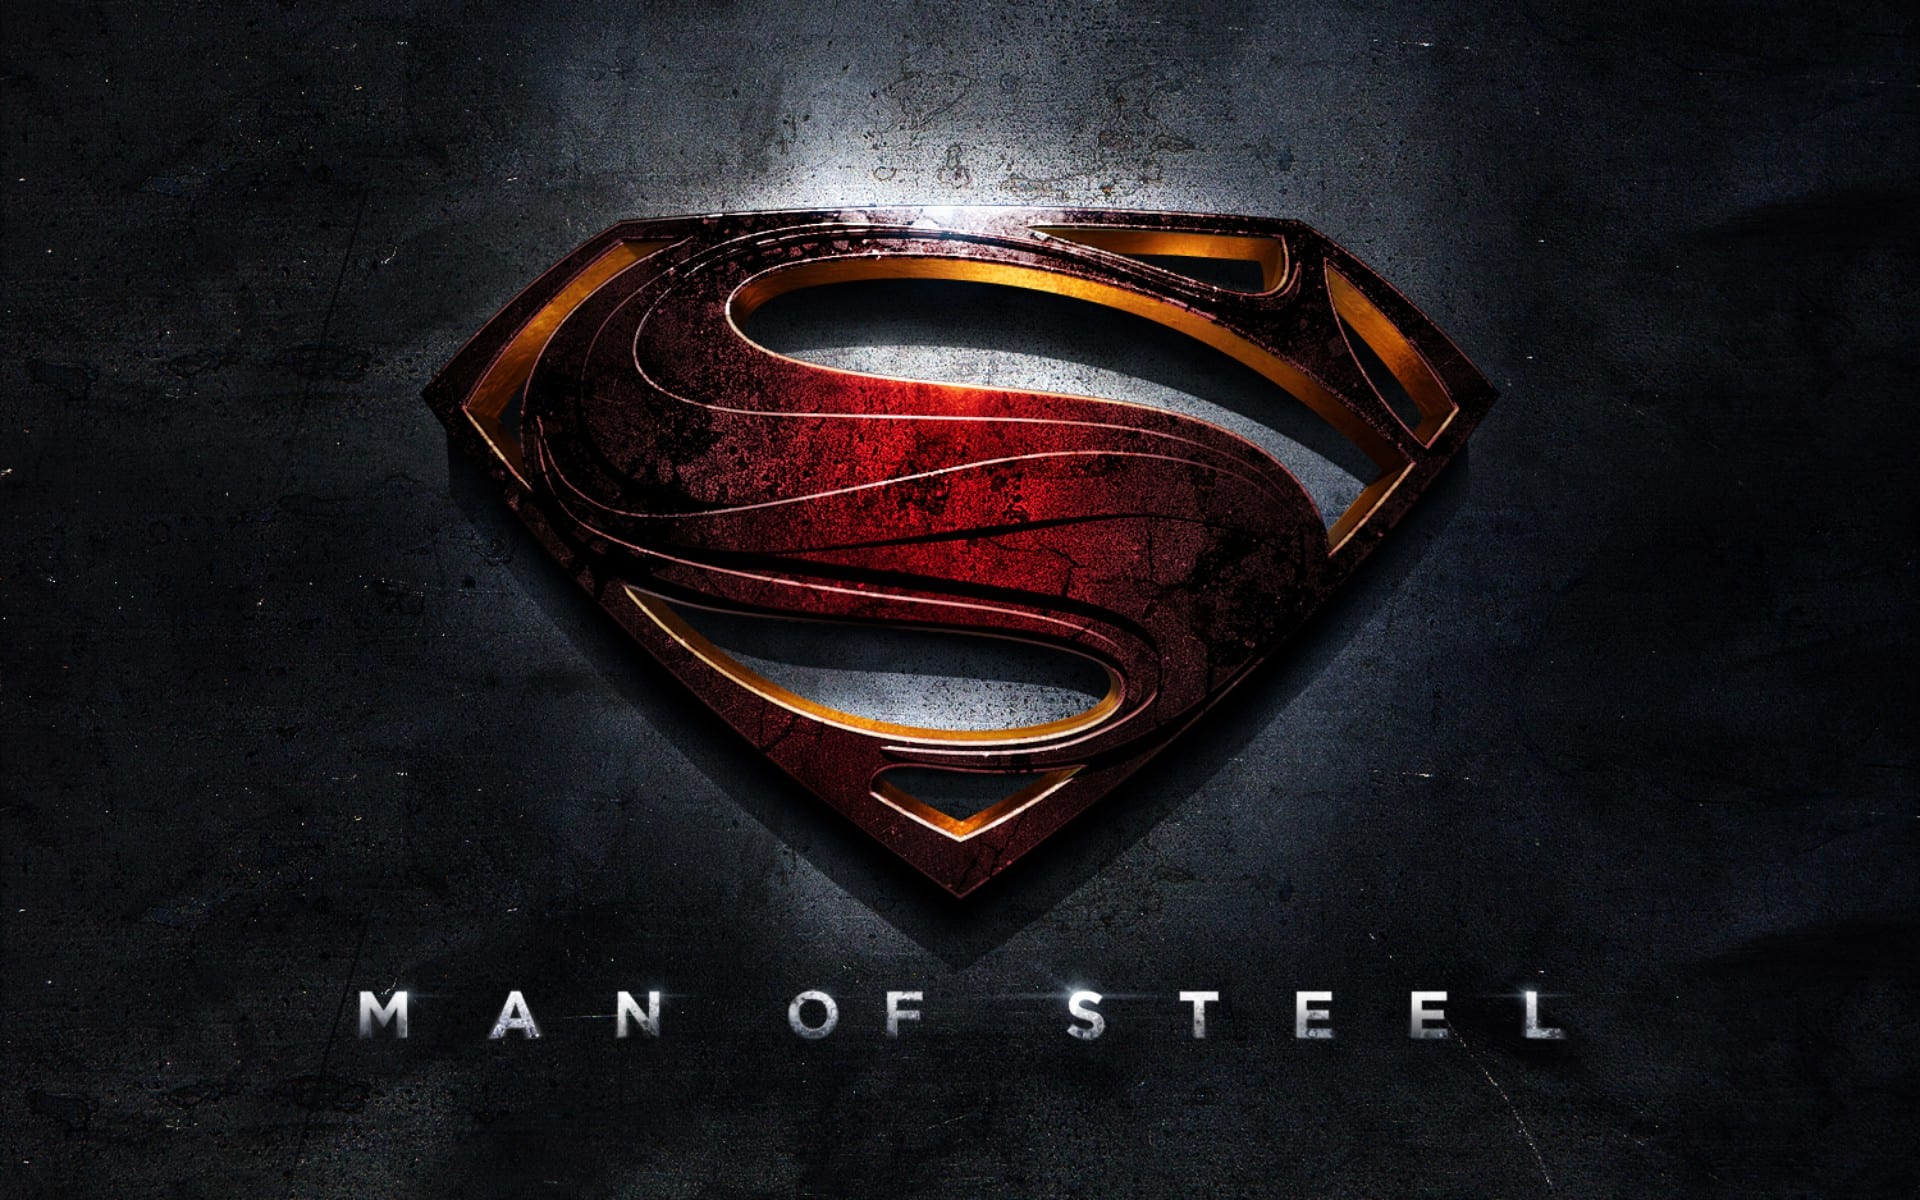 Man of Steel Cast Photo and Concession Promos